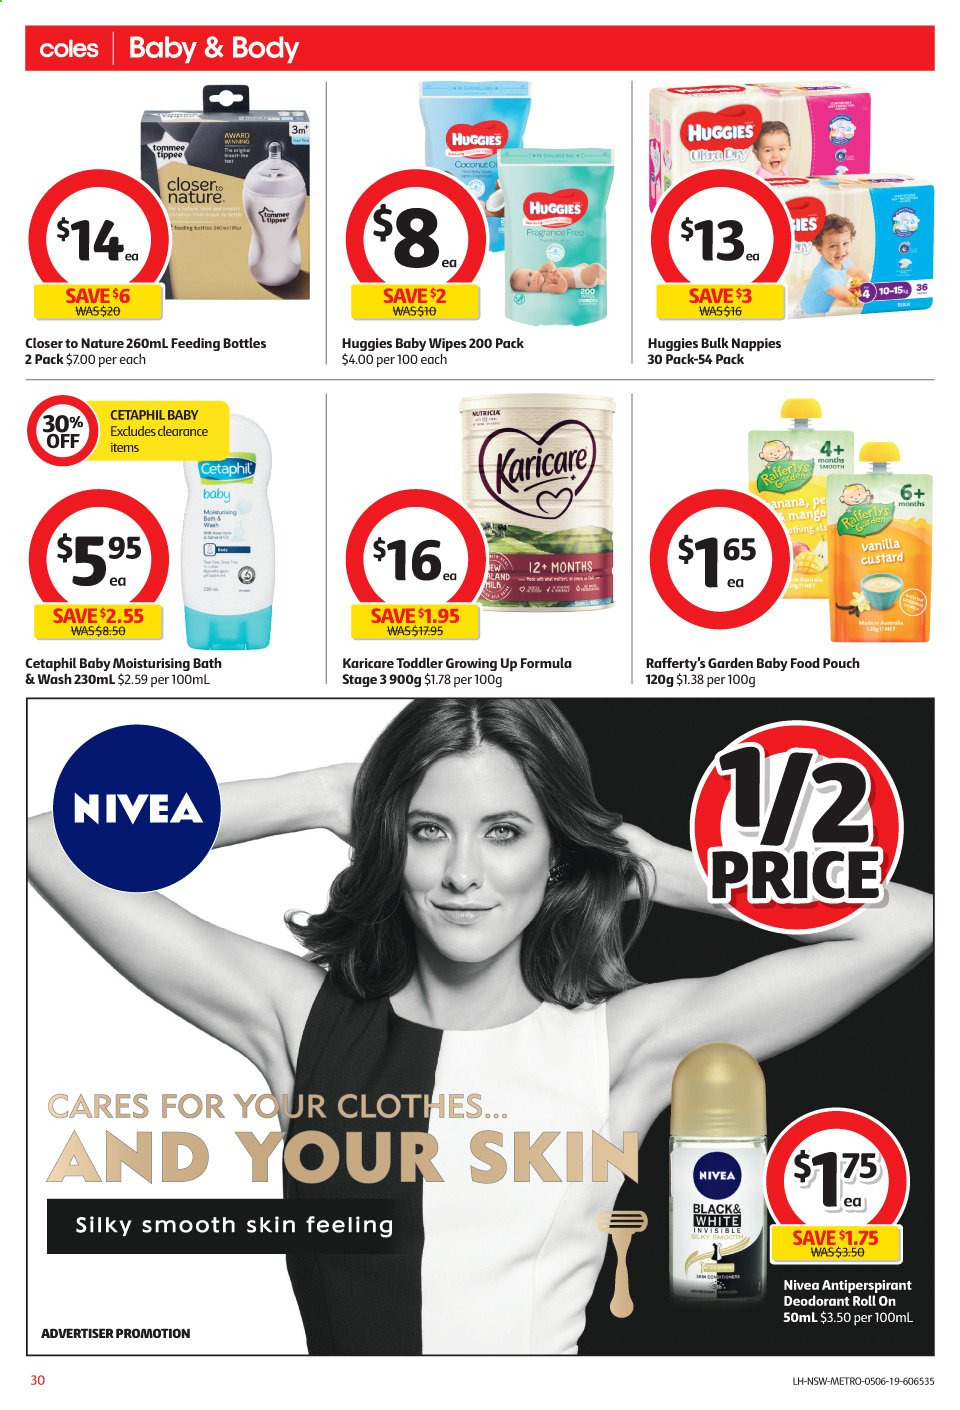 Coles catalogue and weekly specials 5 6 2019 - 11 6 2019